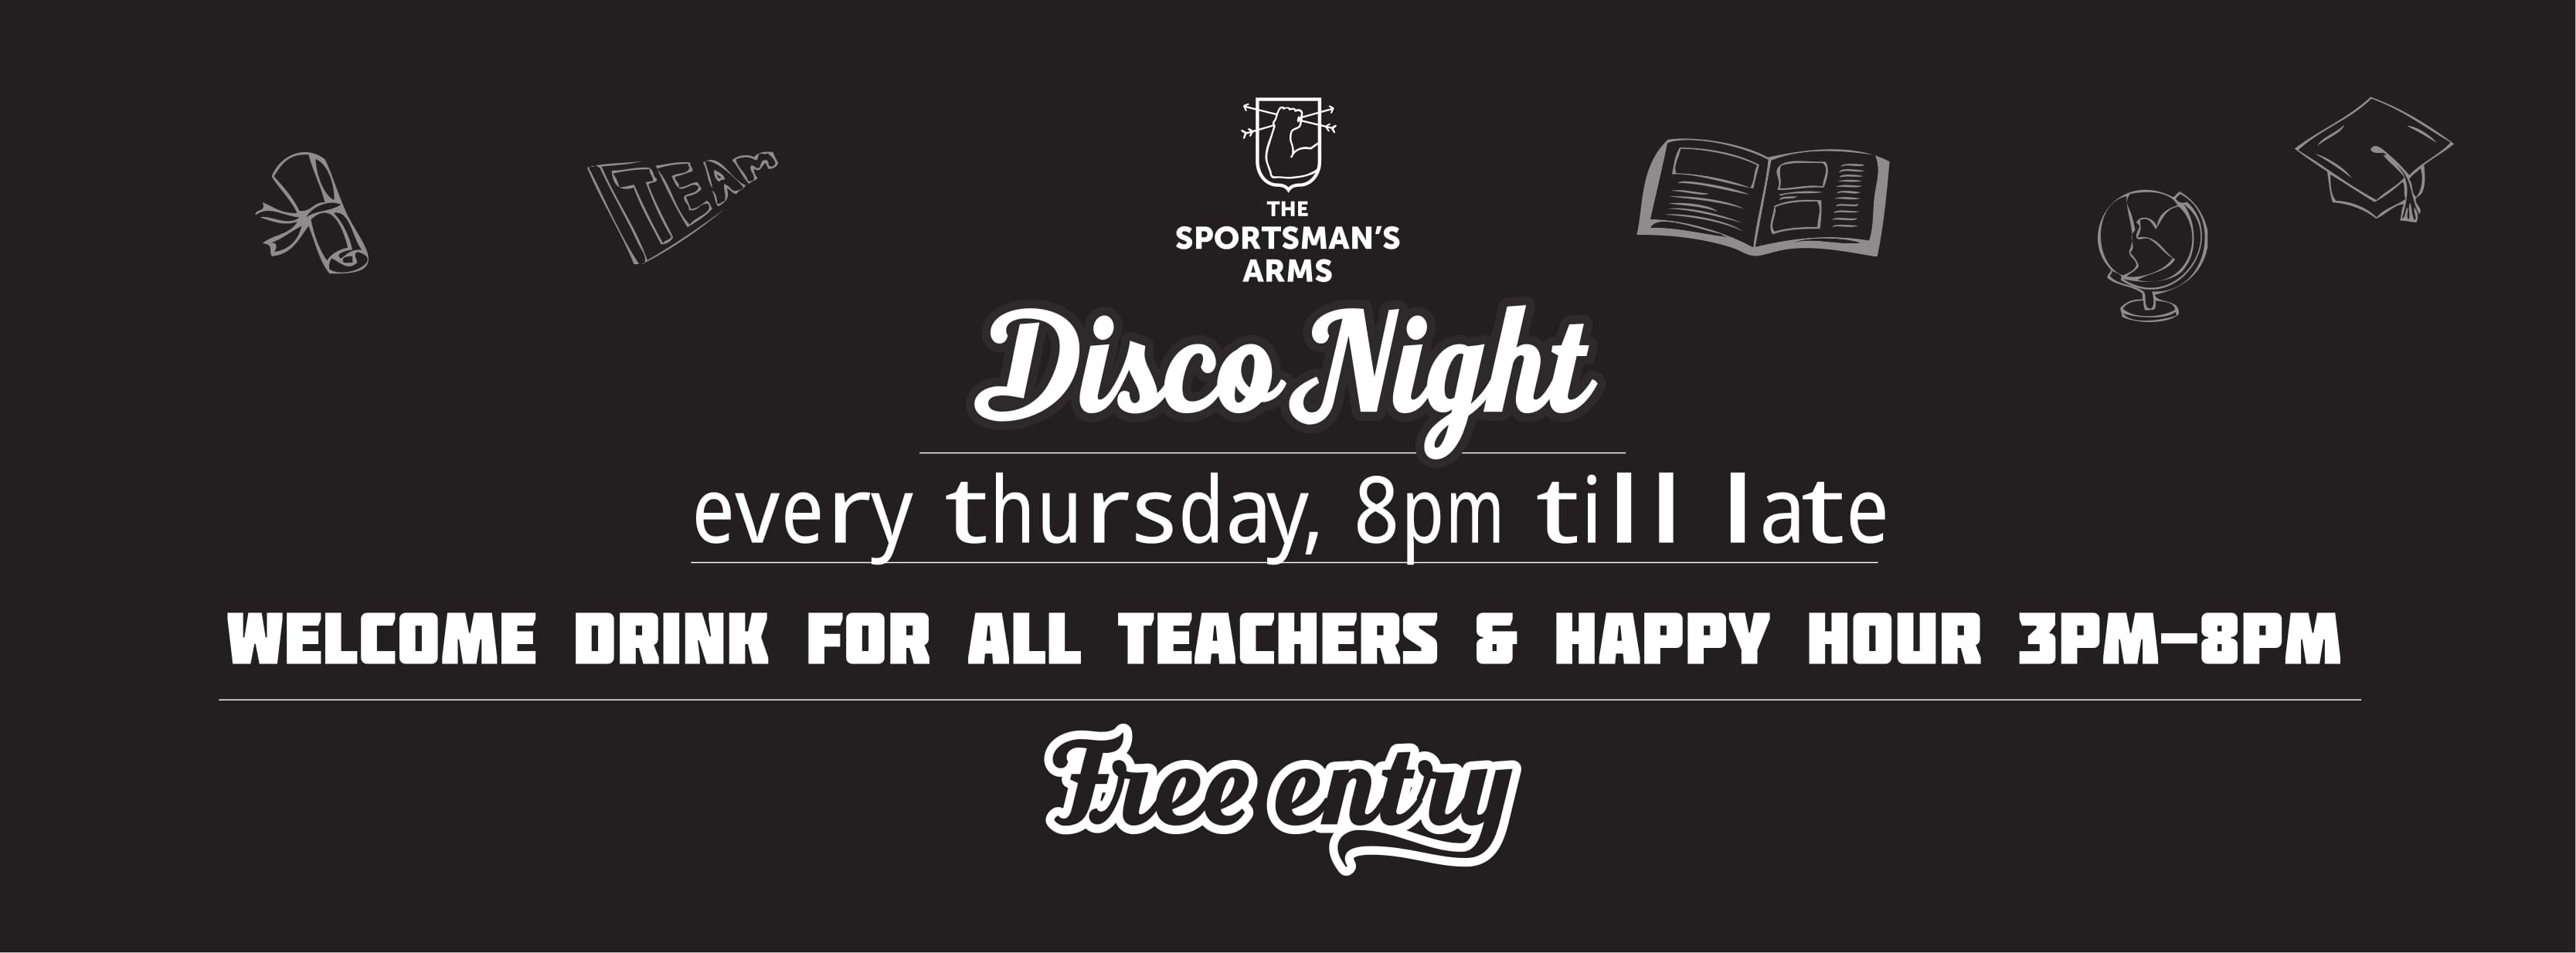 Disco Night @ The Sportsmans Arms